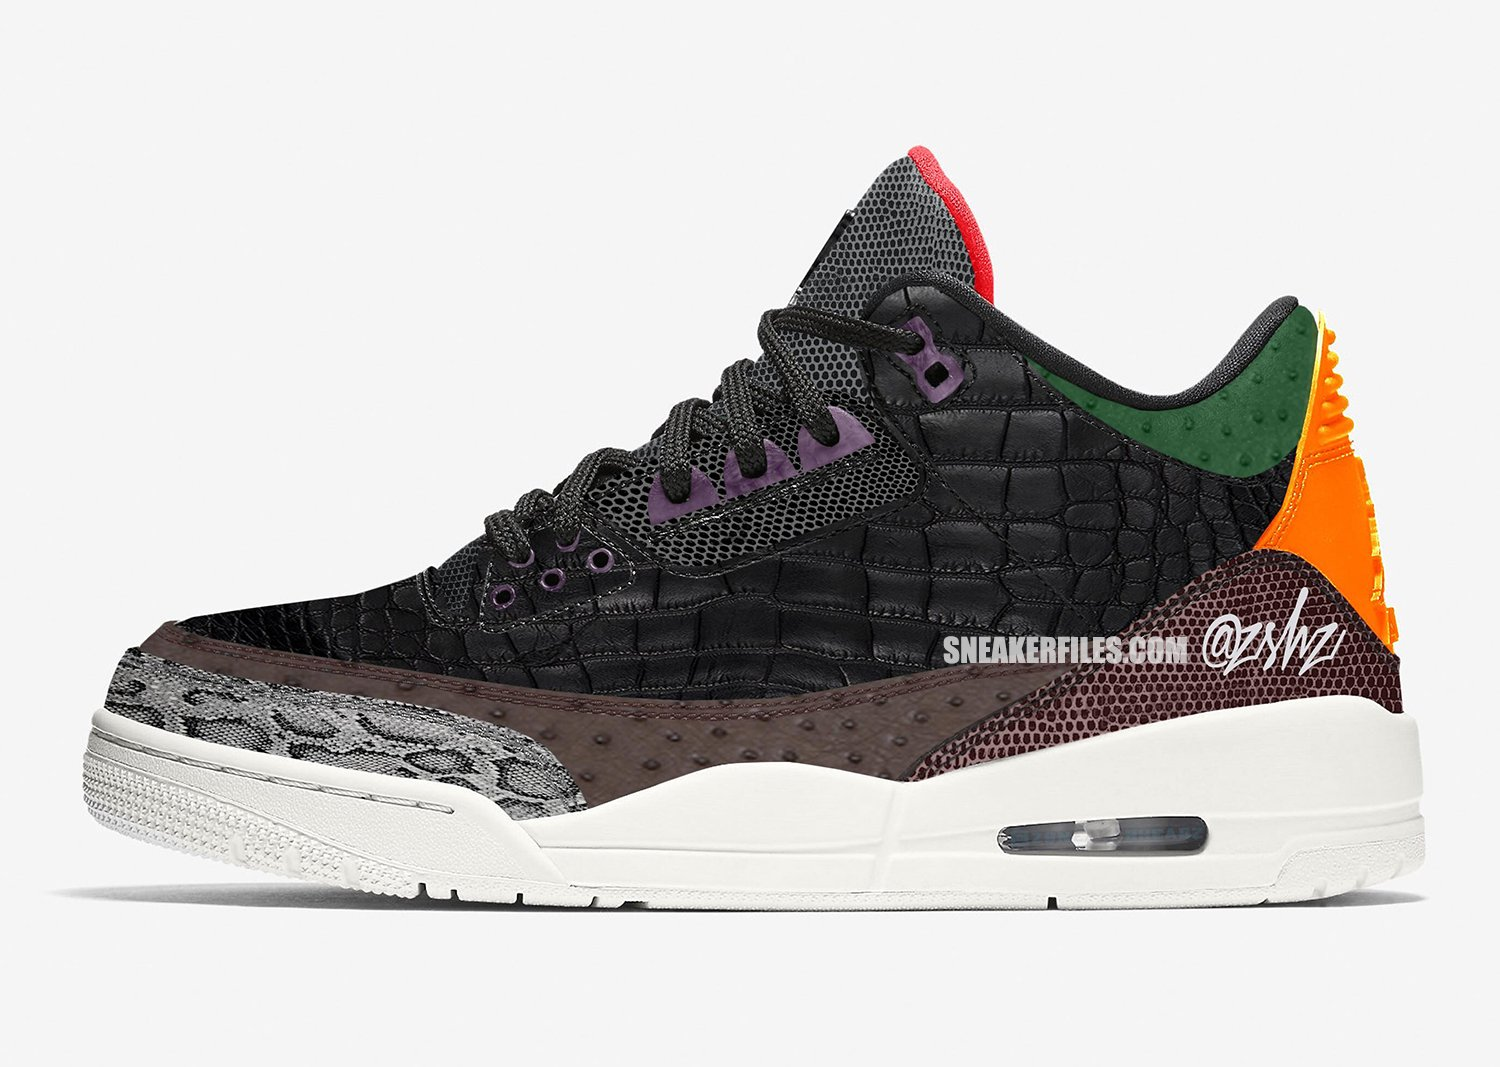 Air Jordan 3 Animal Print Pack Multi-Color CK4344-002 Release Date